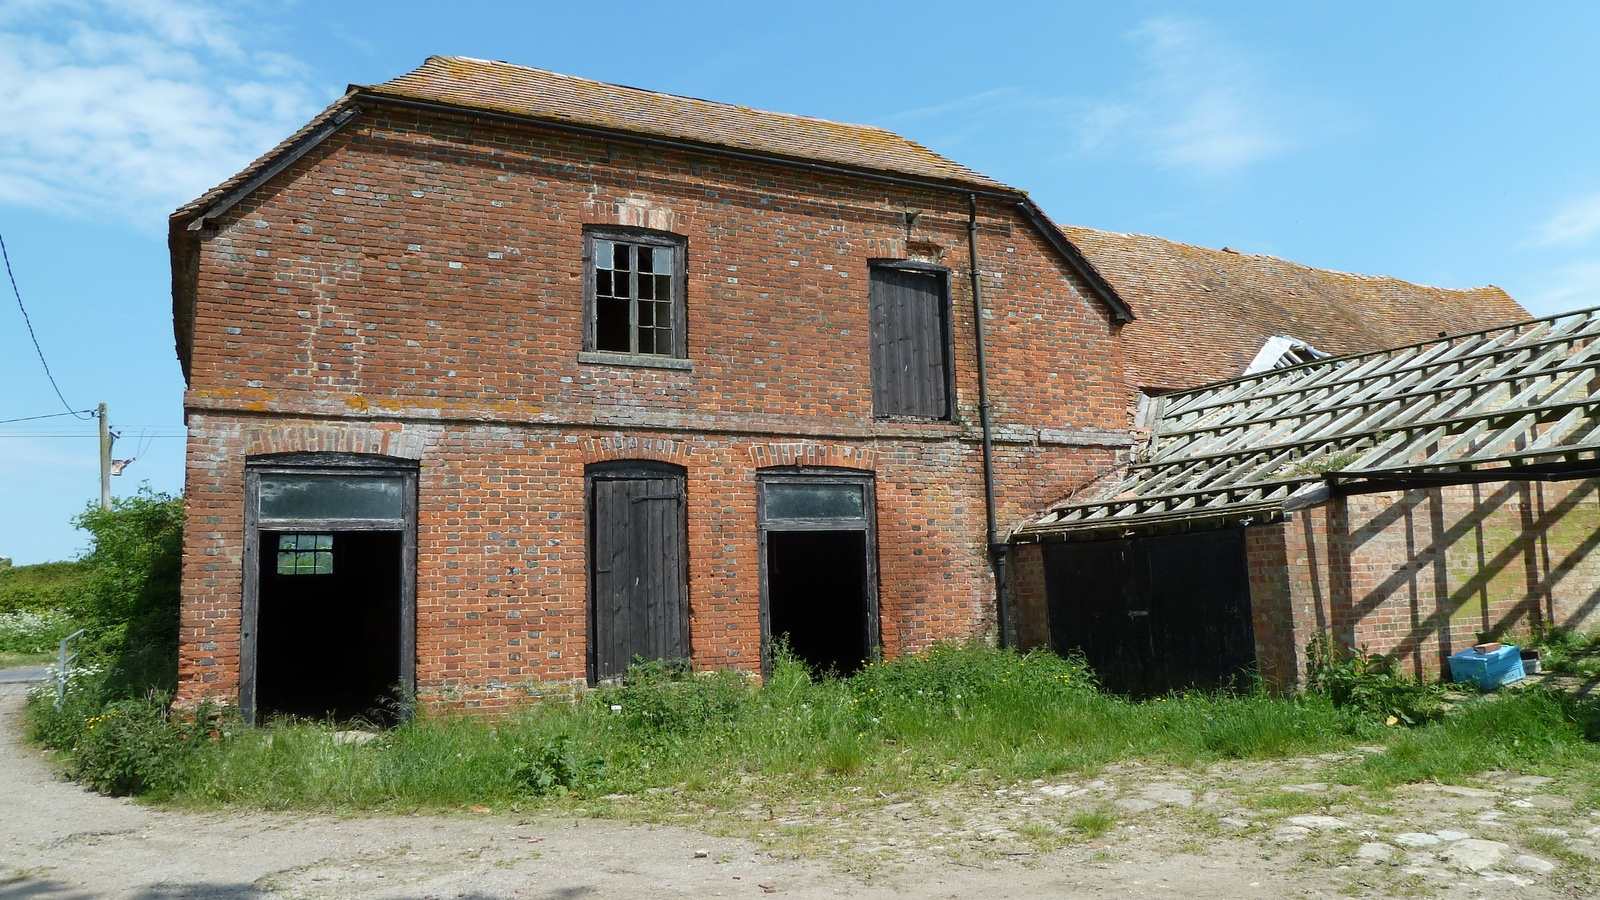 The original barns were in a dilapidated condition